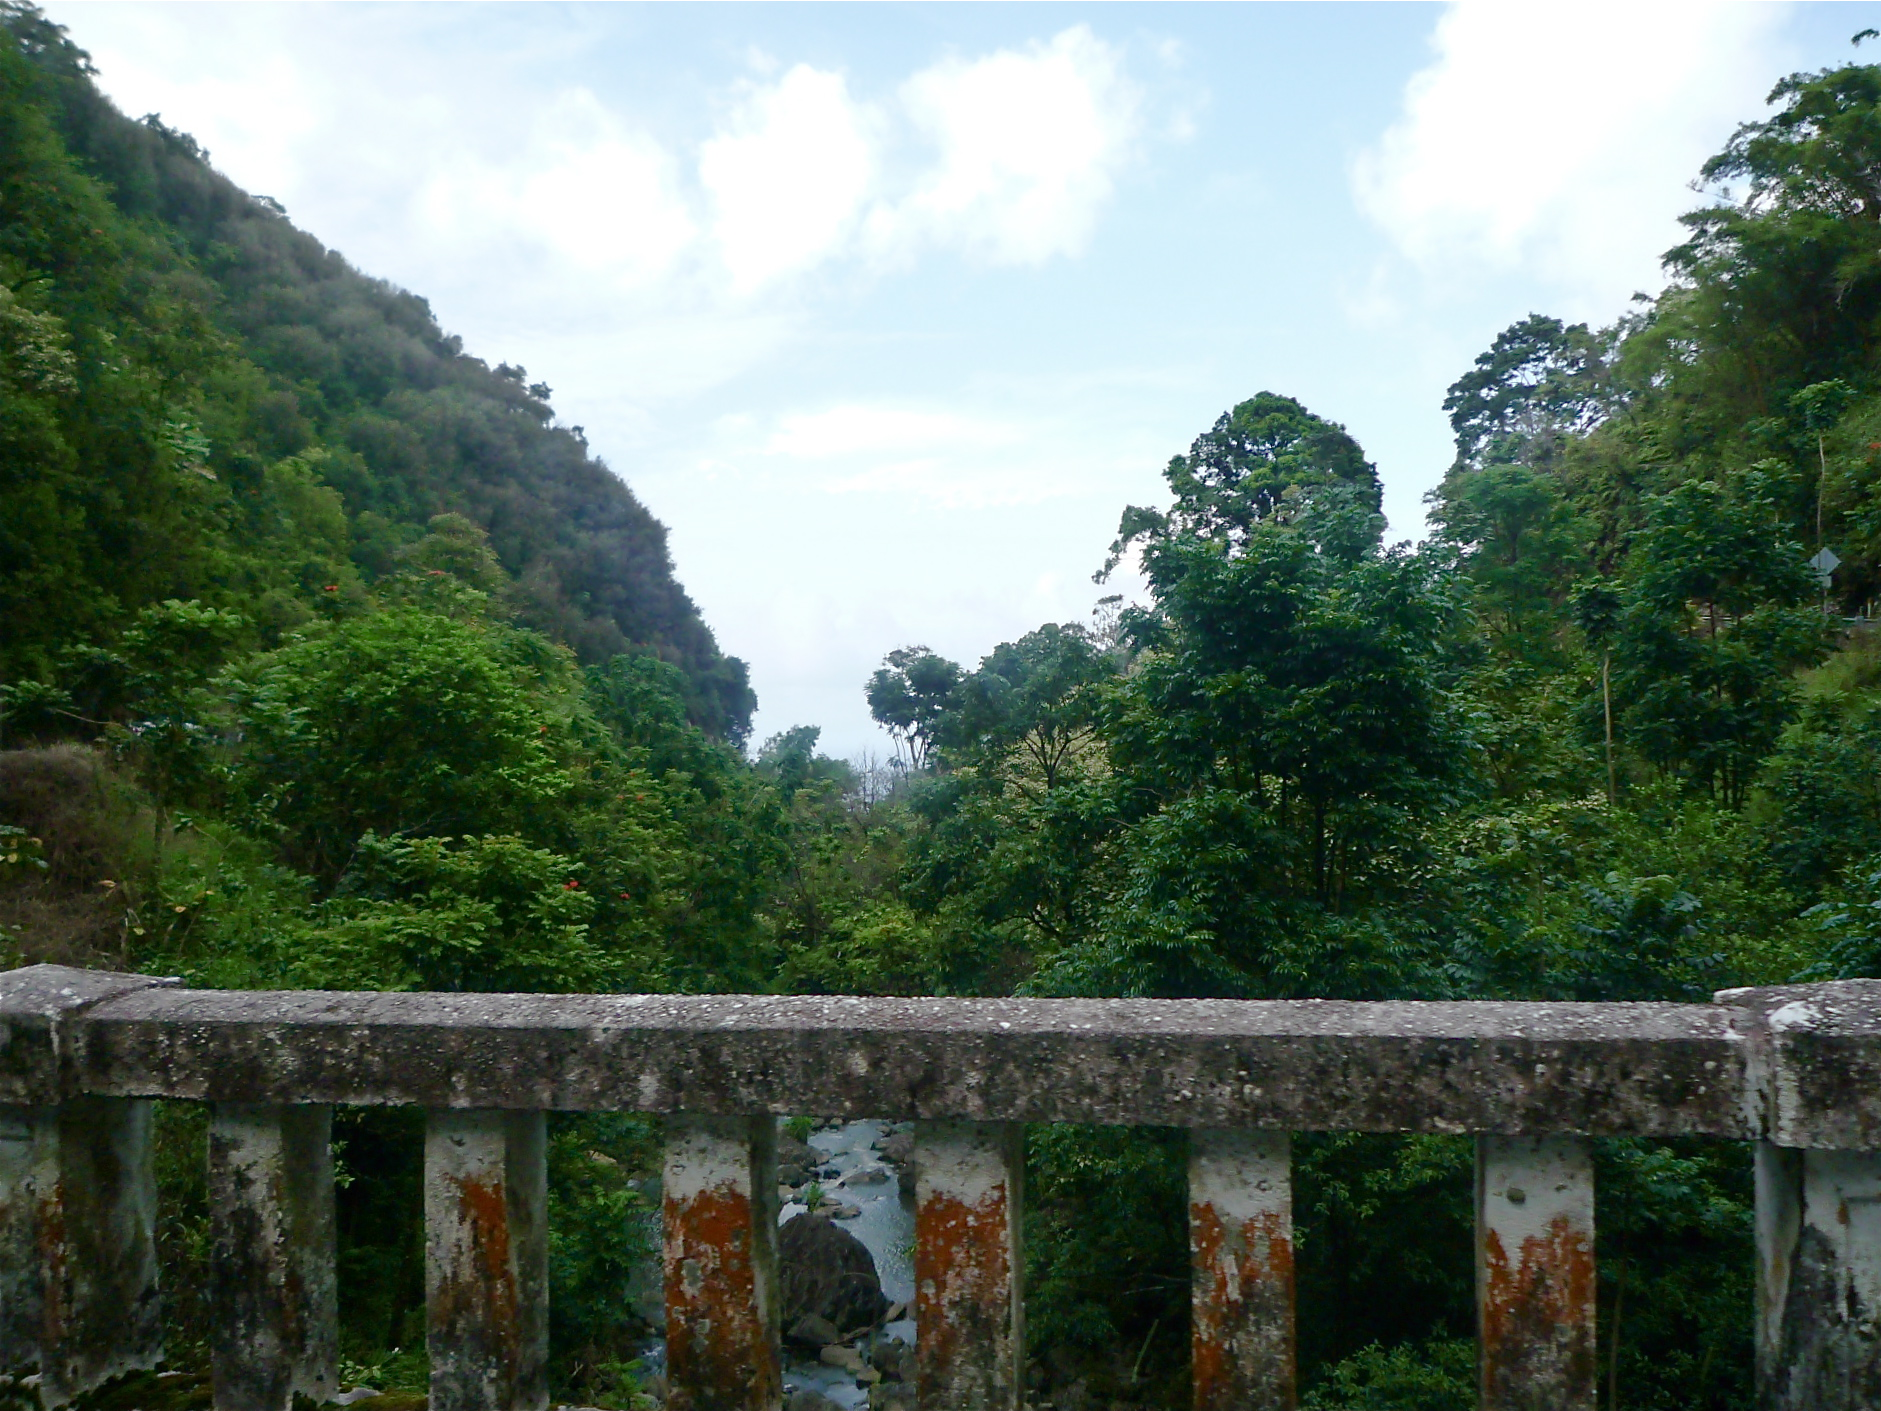 The view from one of many bridges on the Hana Highway